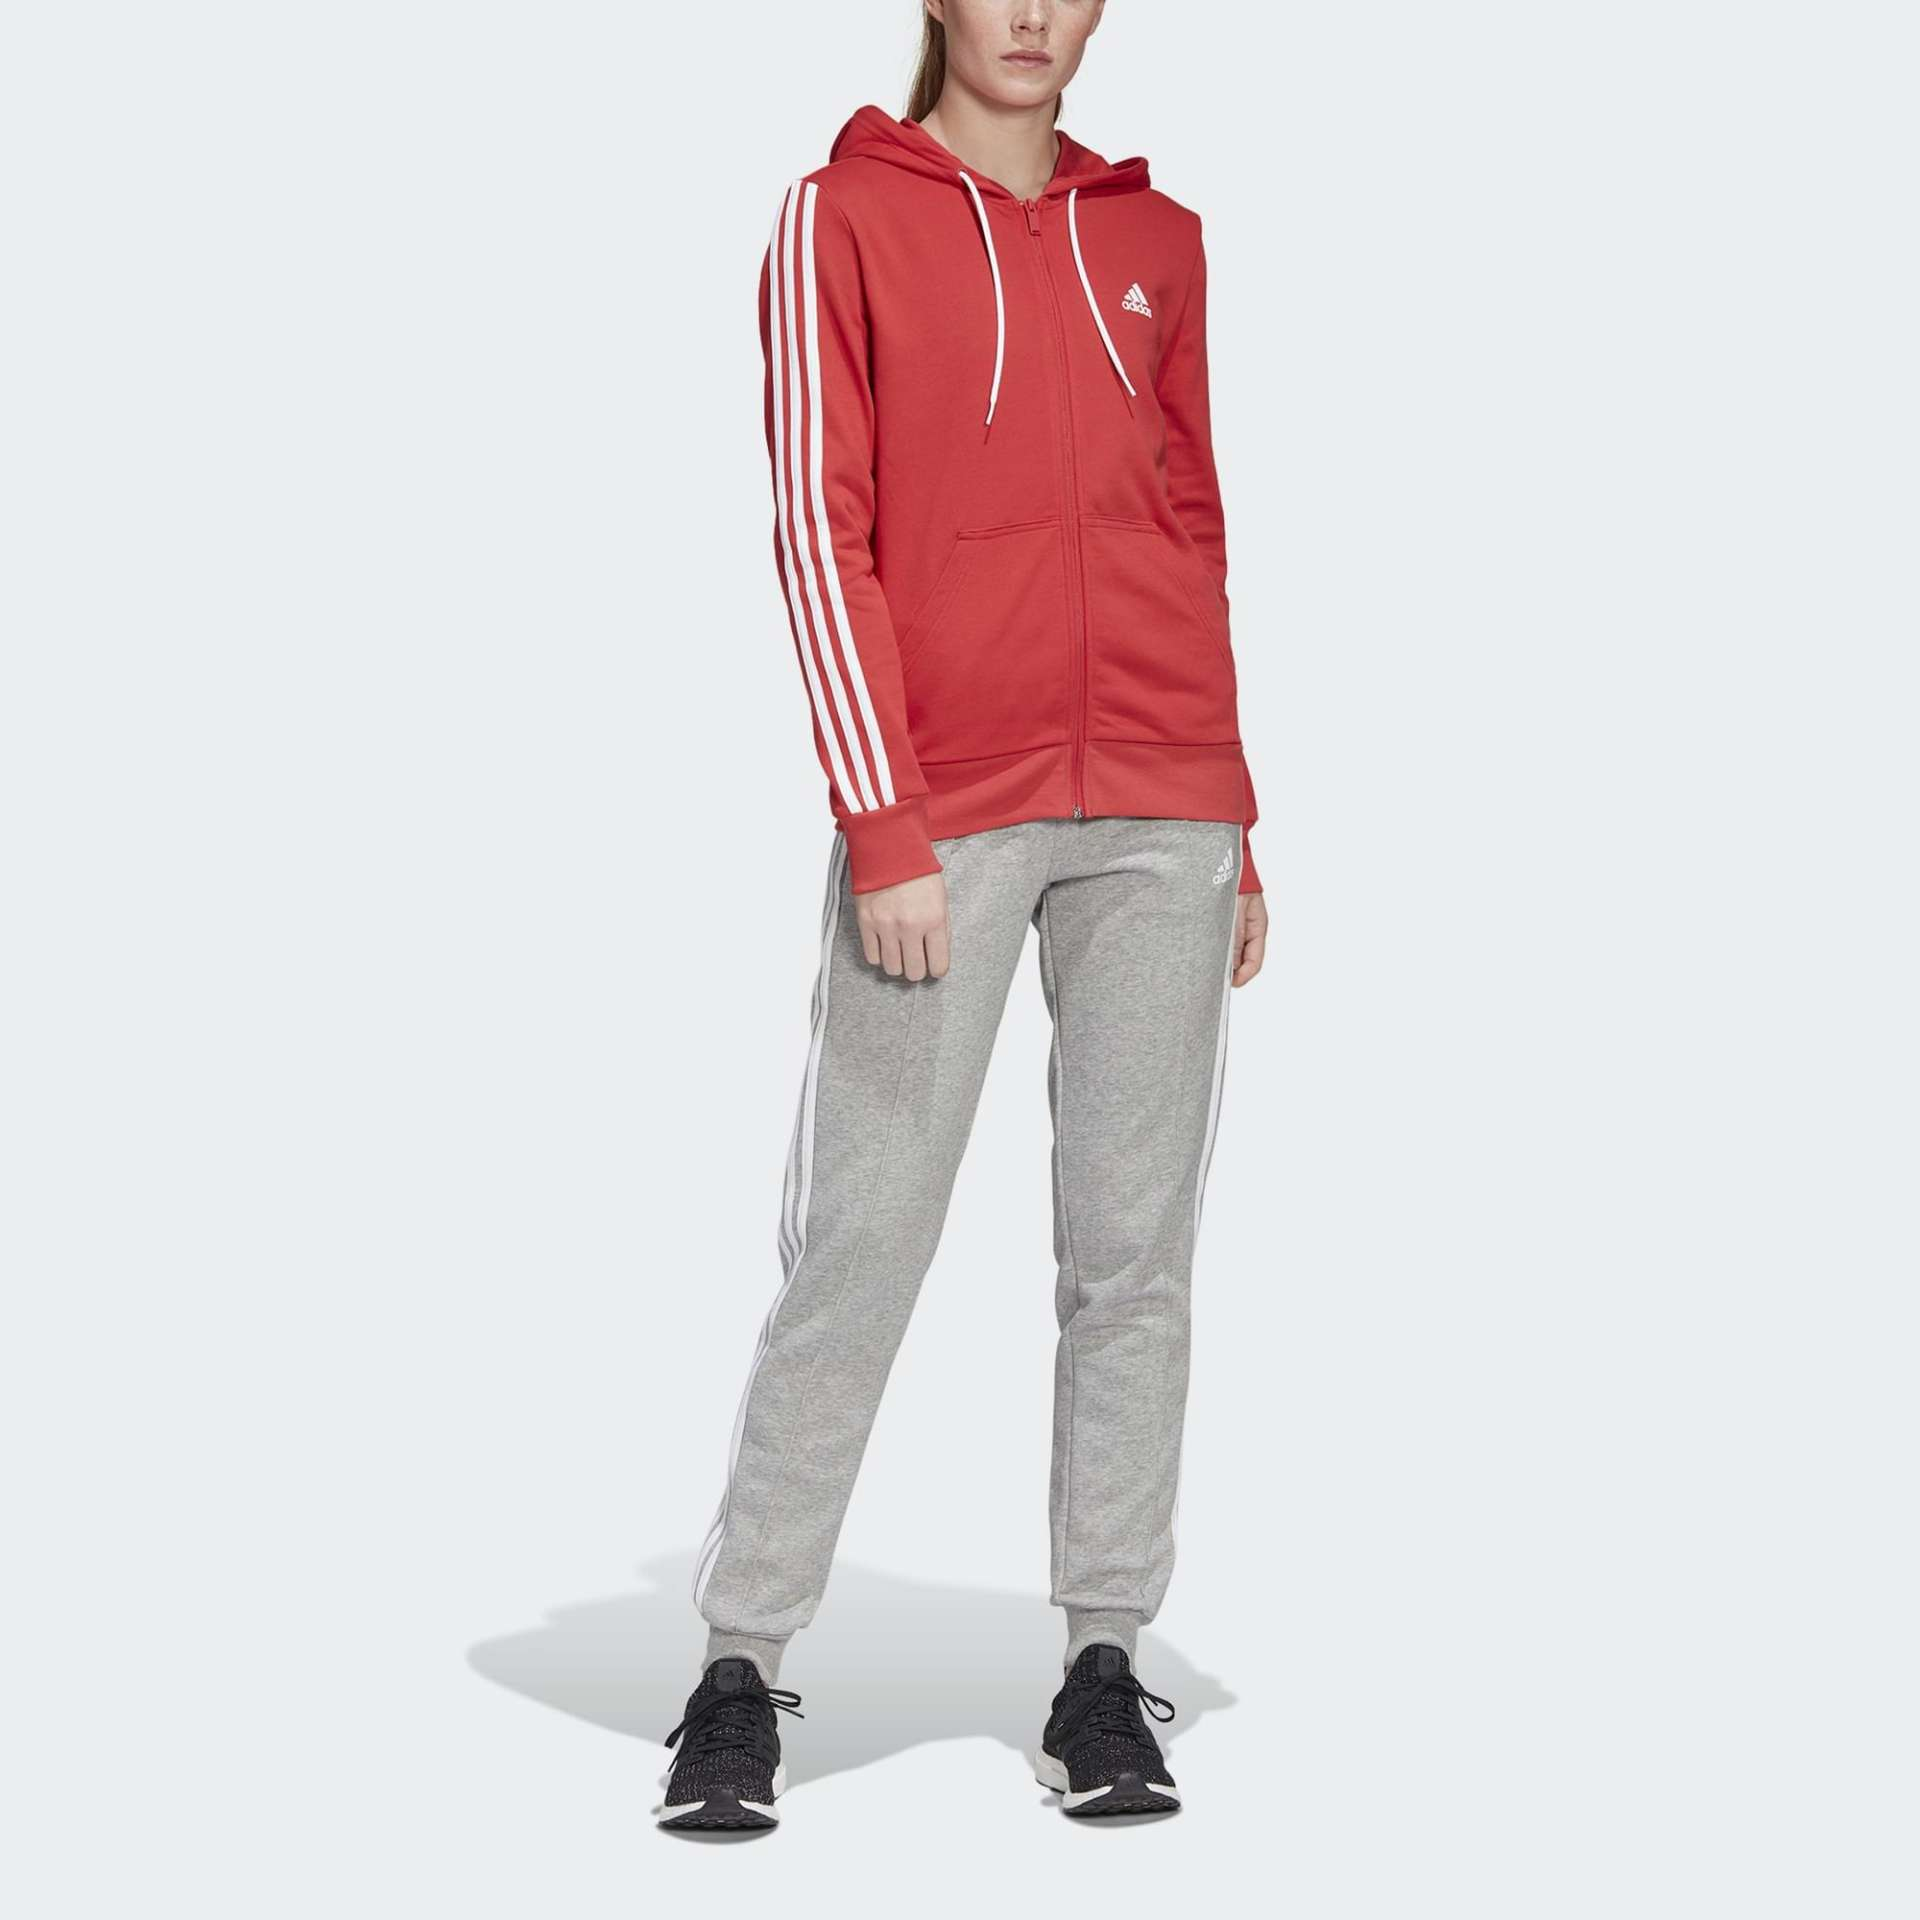 adidas PERFORMANCE W TS CO Energiz